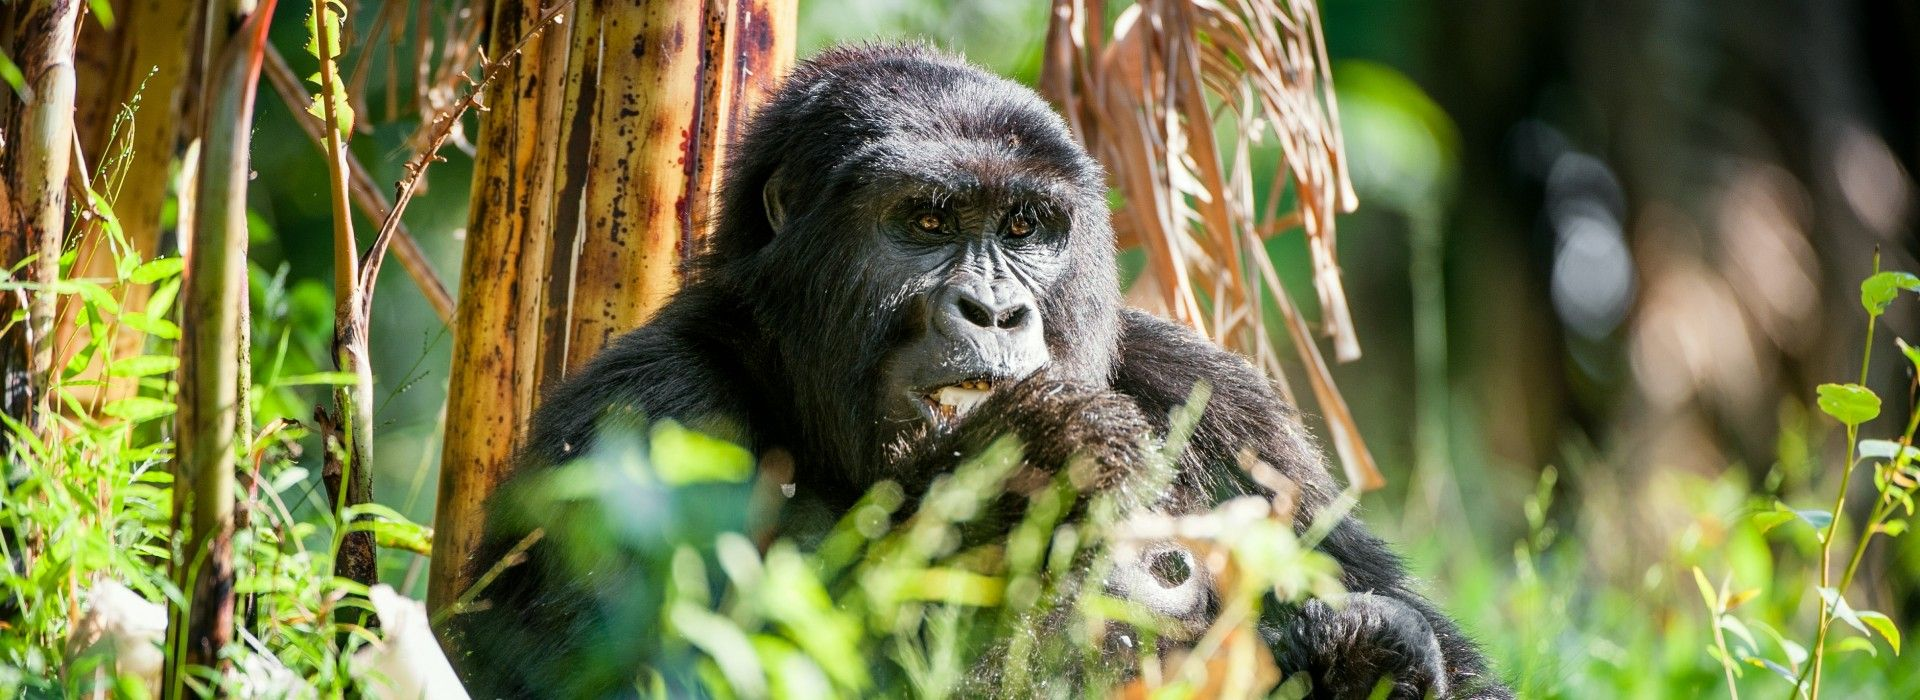 Gorilla and chimpanzee tracking Tours in Queen Elizabeth National Park